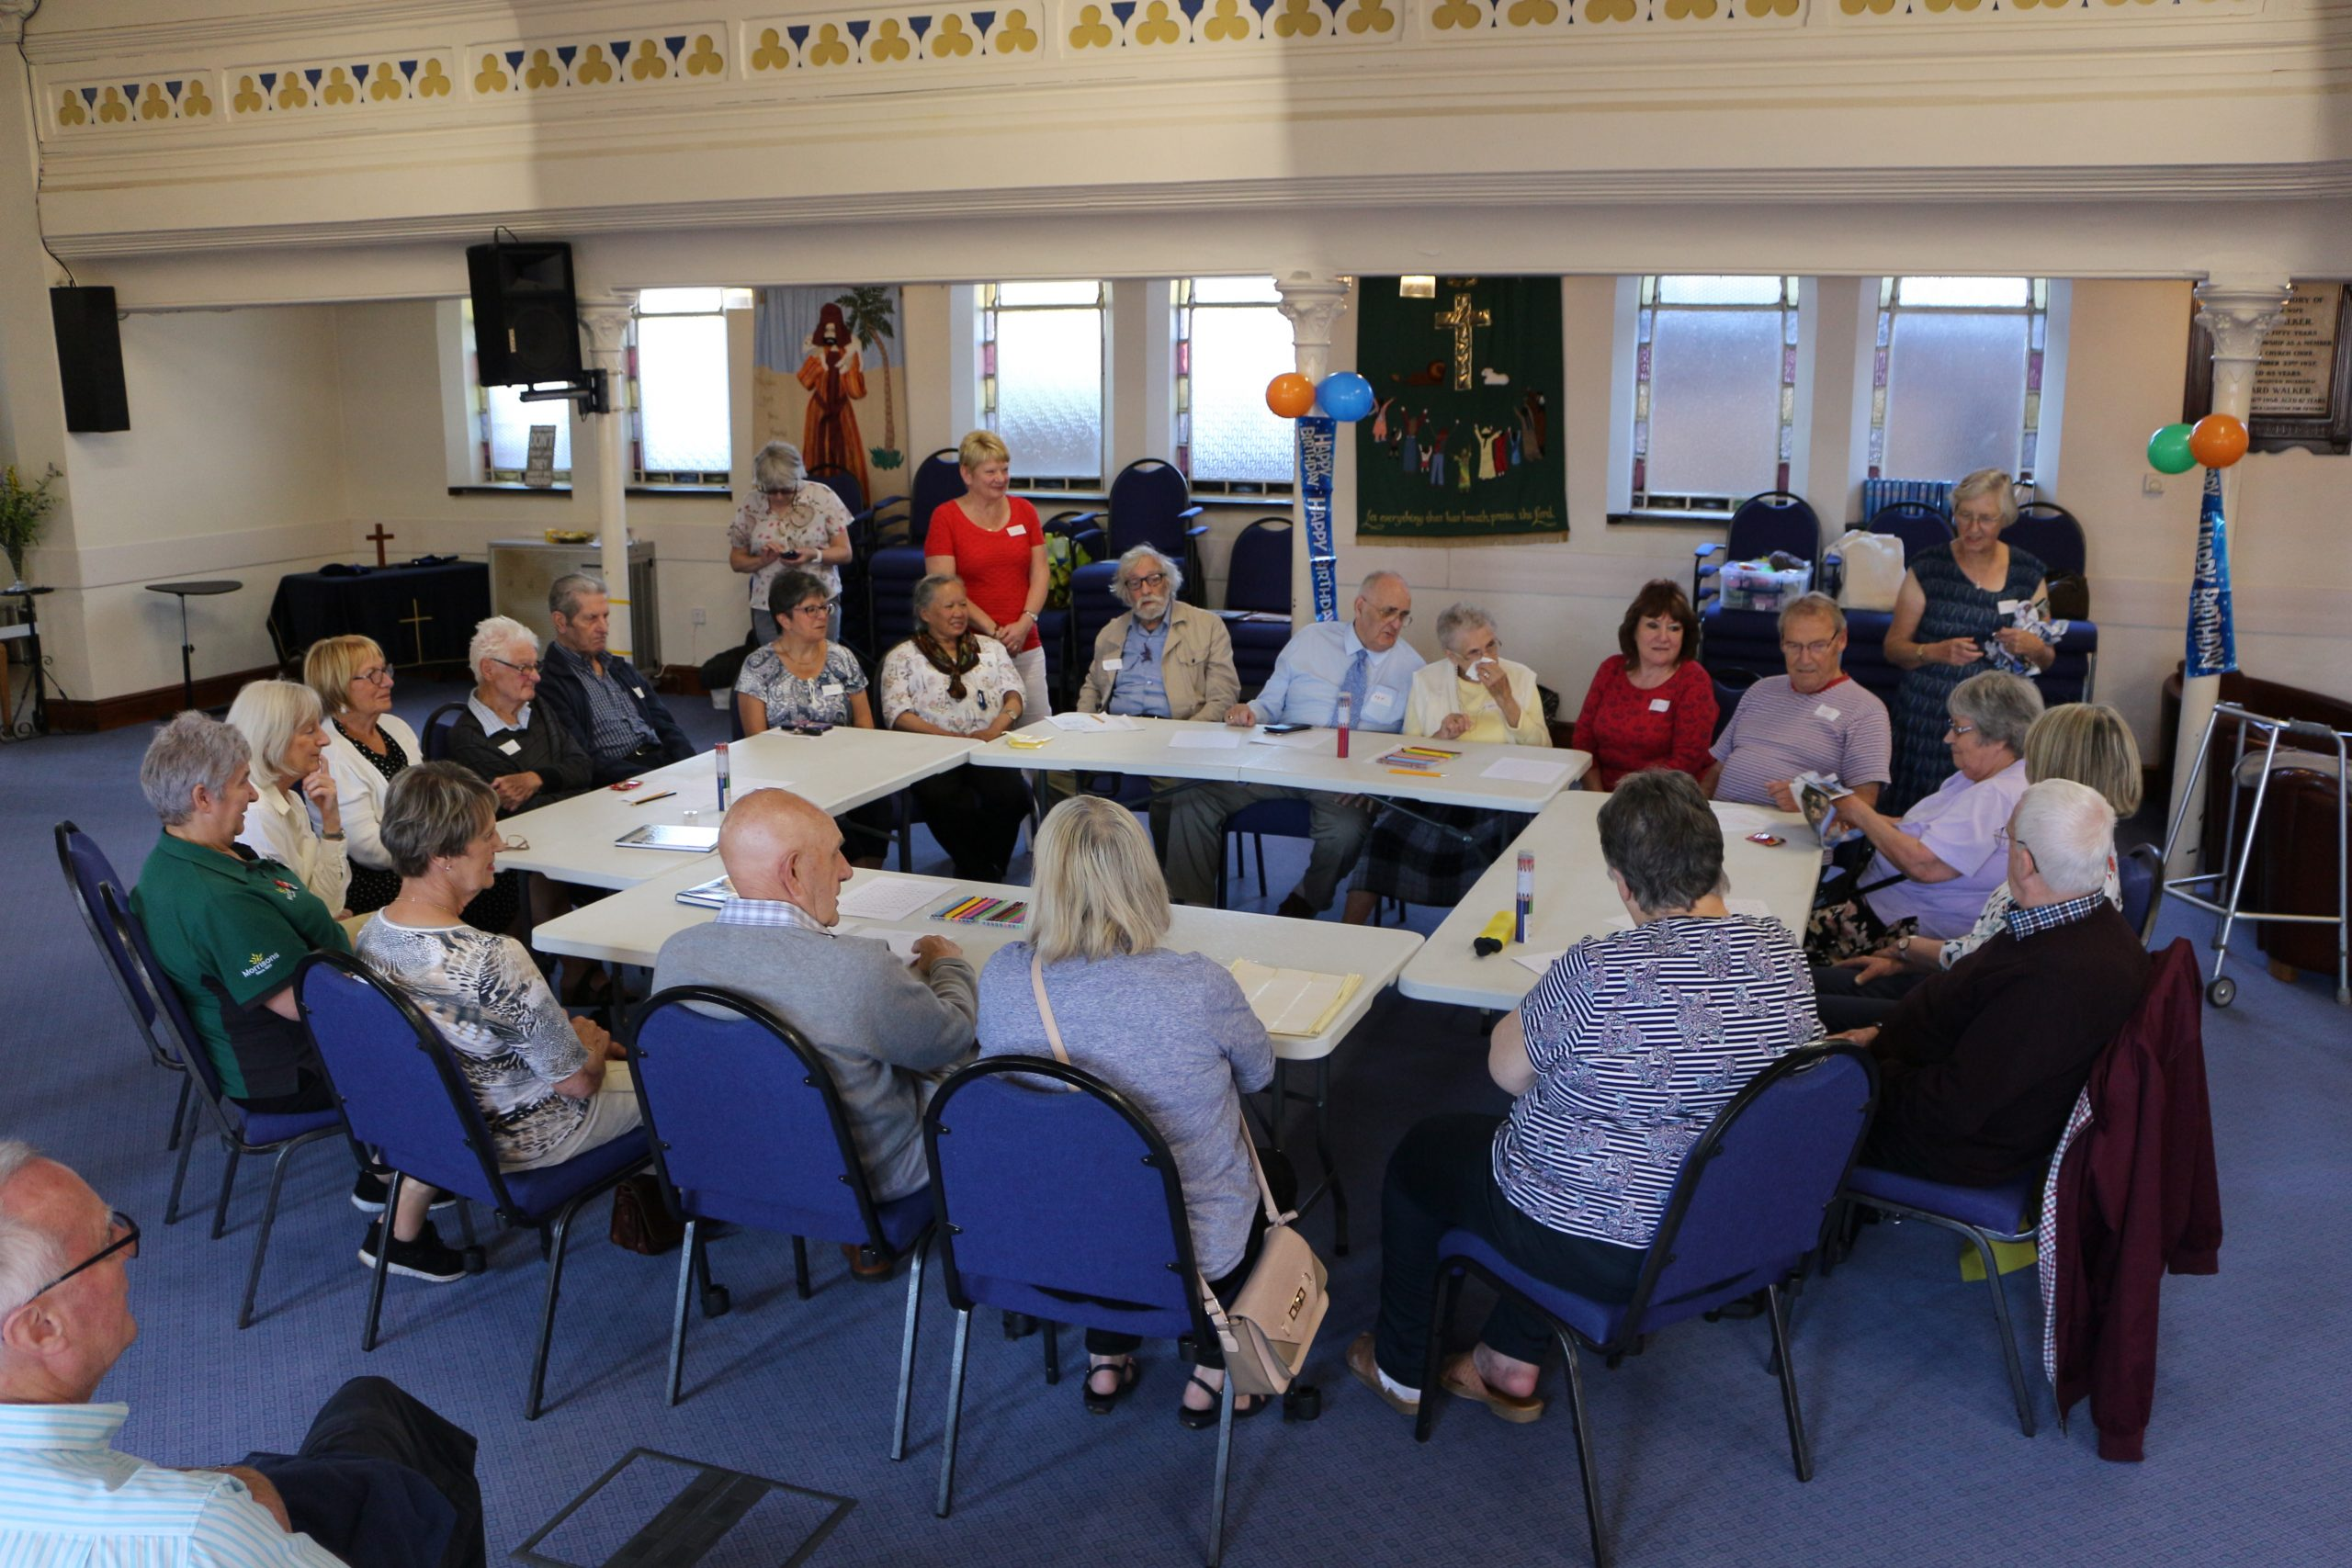 The memory cafe prior to COVID restrictions